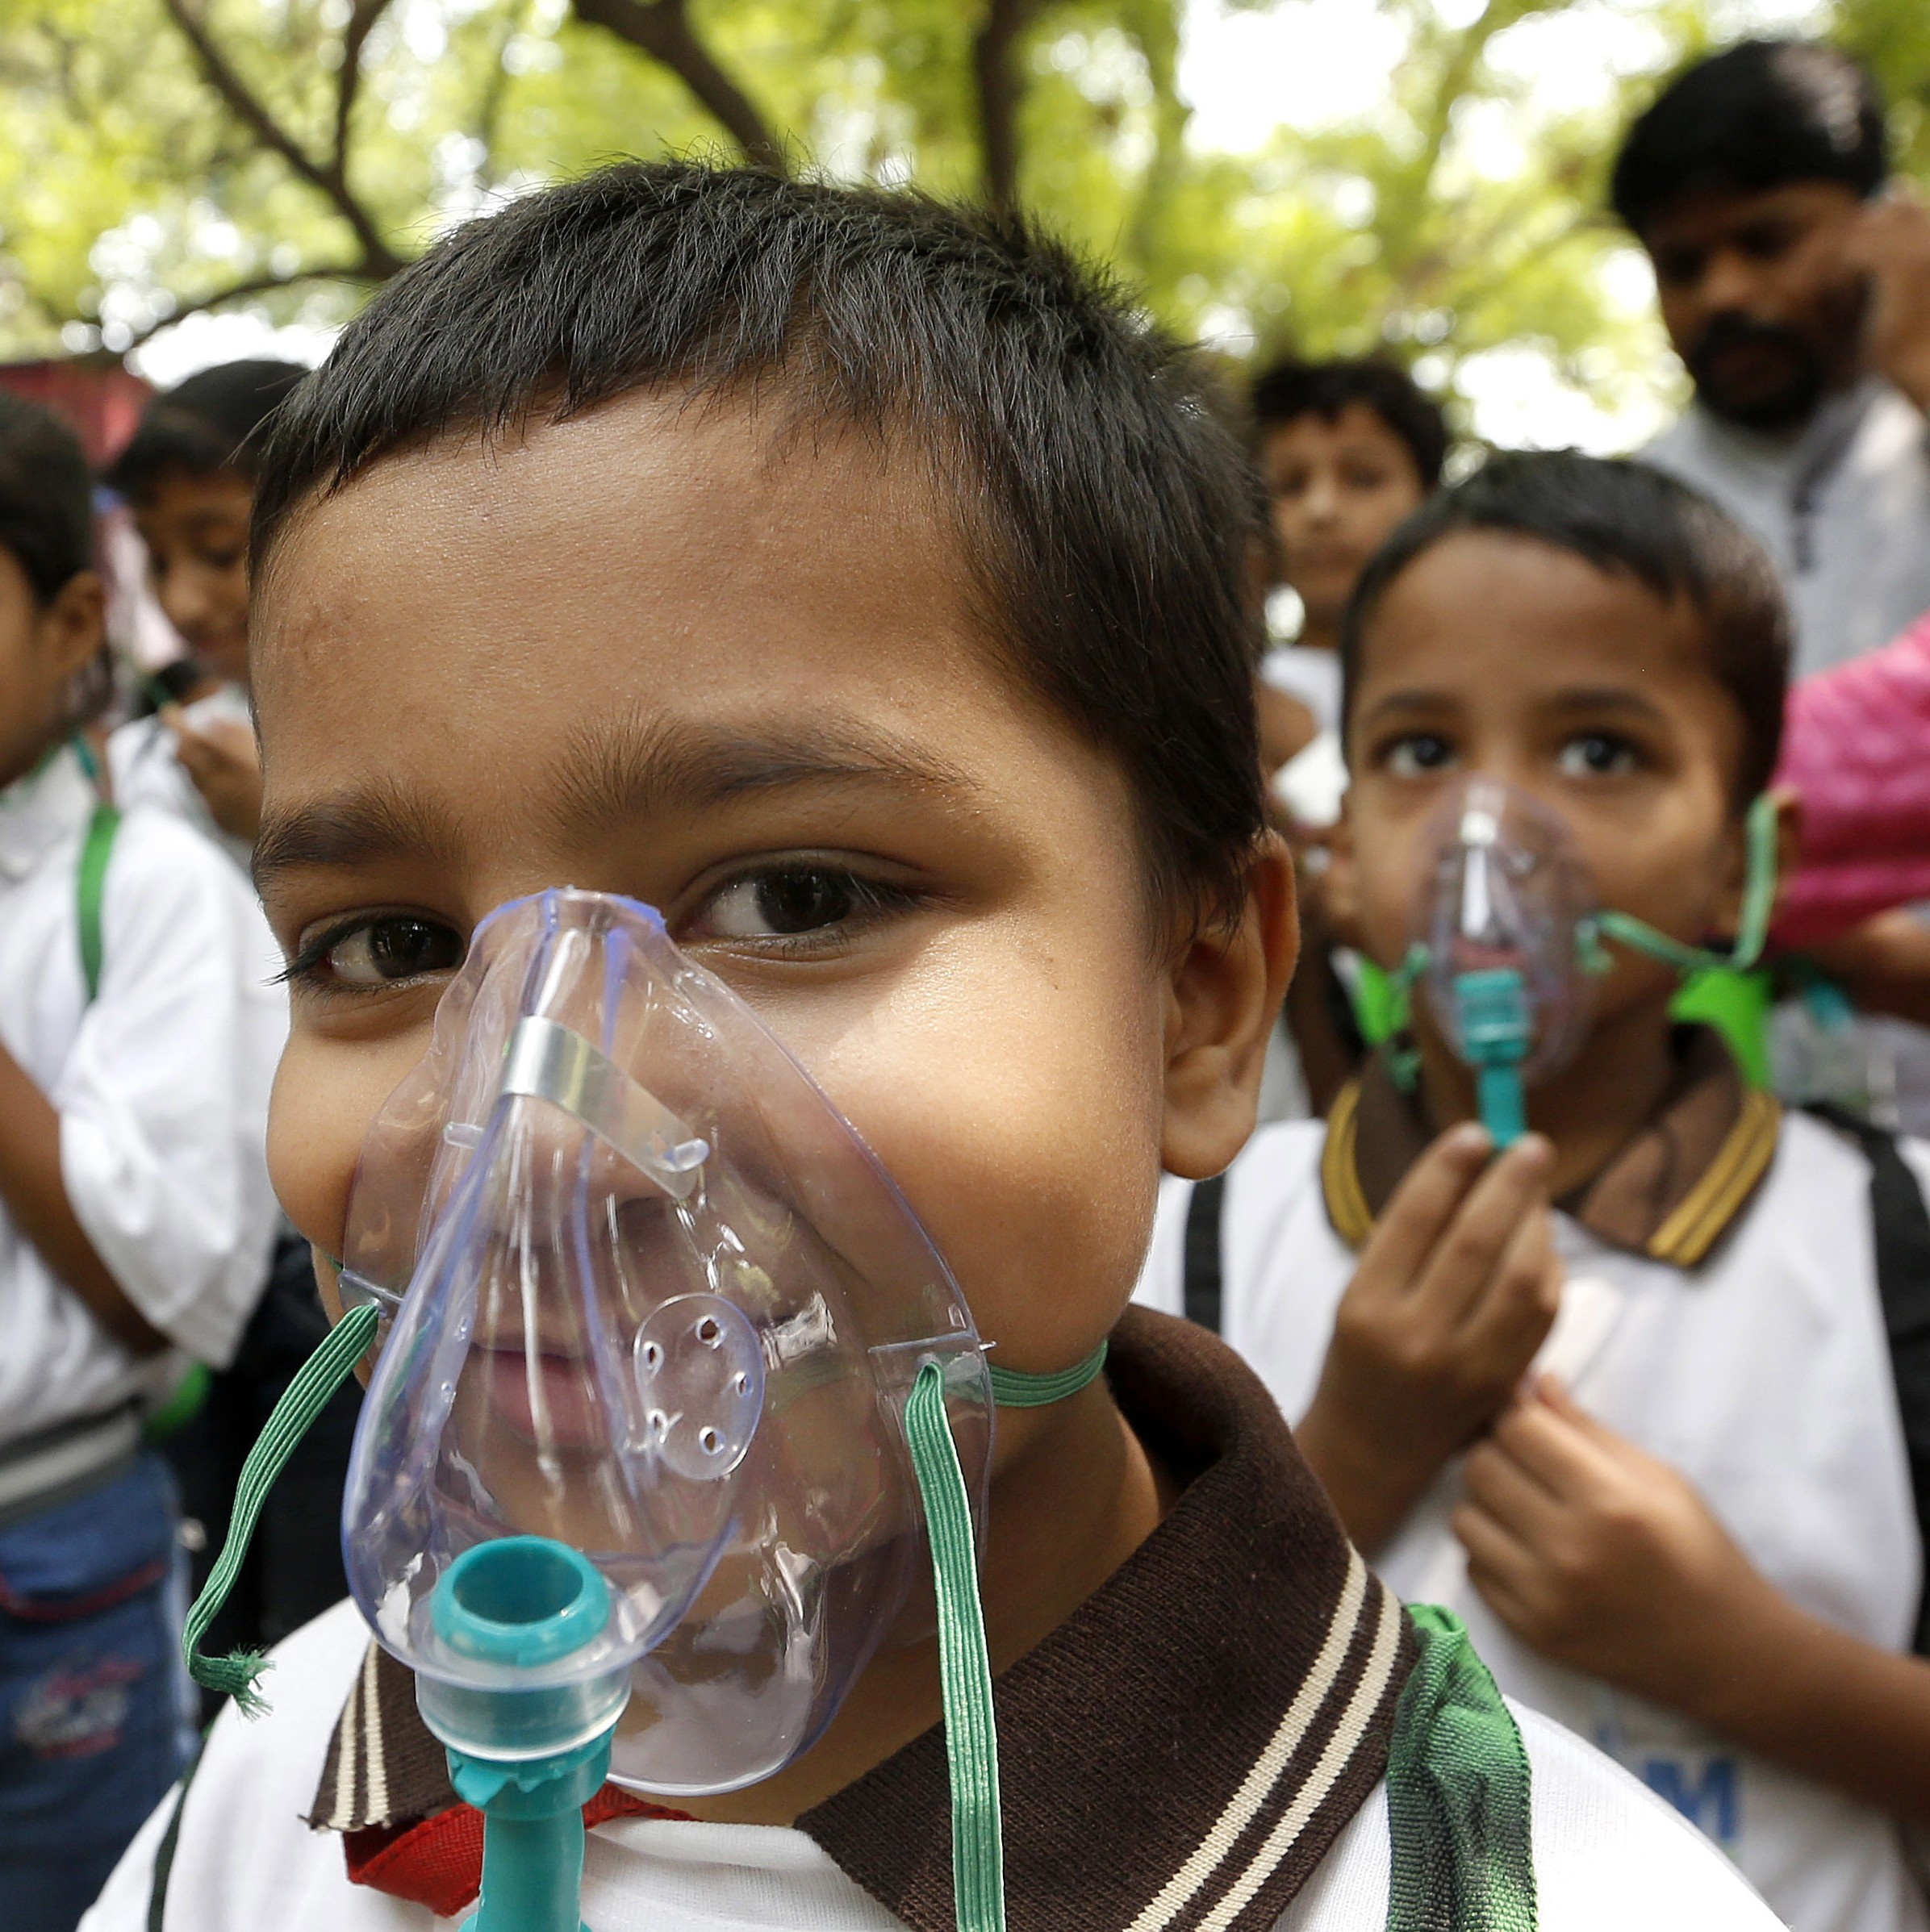 air pollution essay 7 The following essay is just an example to help student to improve their writing skills by providing them with simple ideas in terms of style, linking words a.